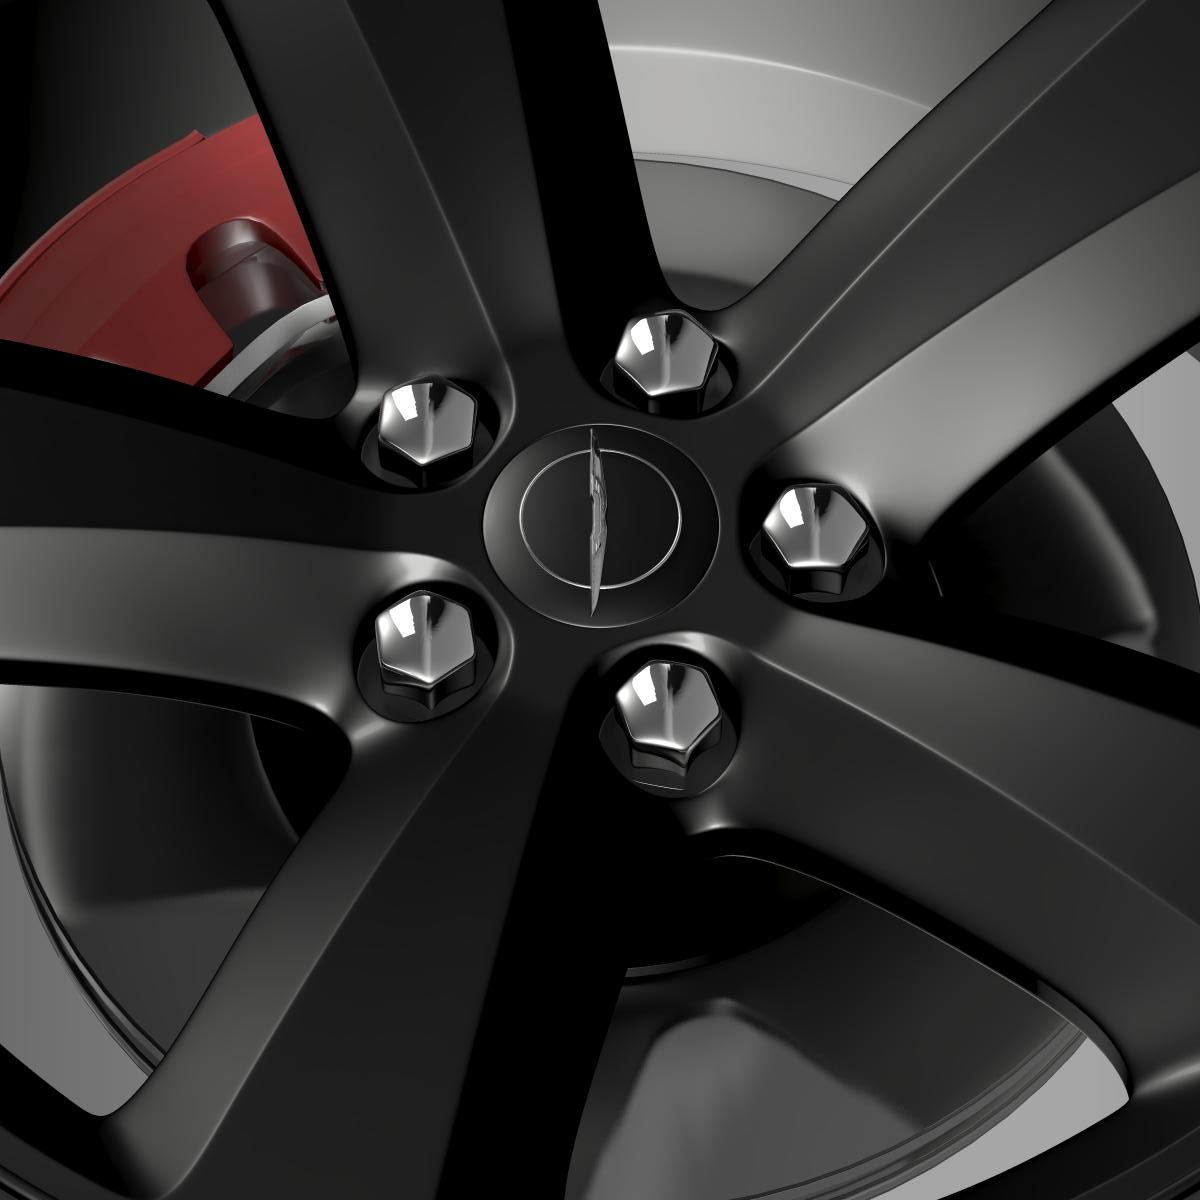 chrysler 300s wheel 3d model 3ds max fbx c4d lwo ma mb hrc xsi obj 210673